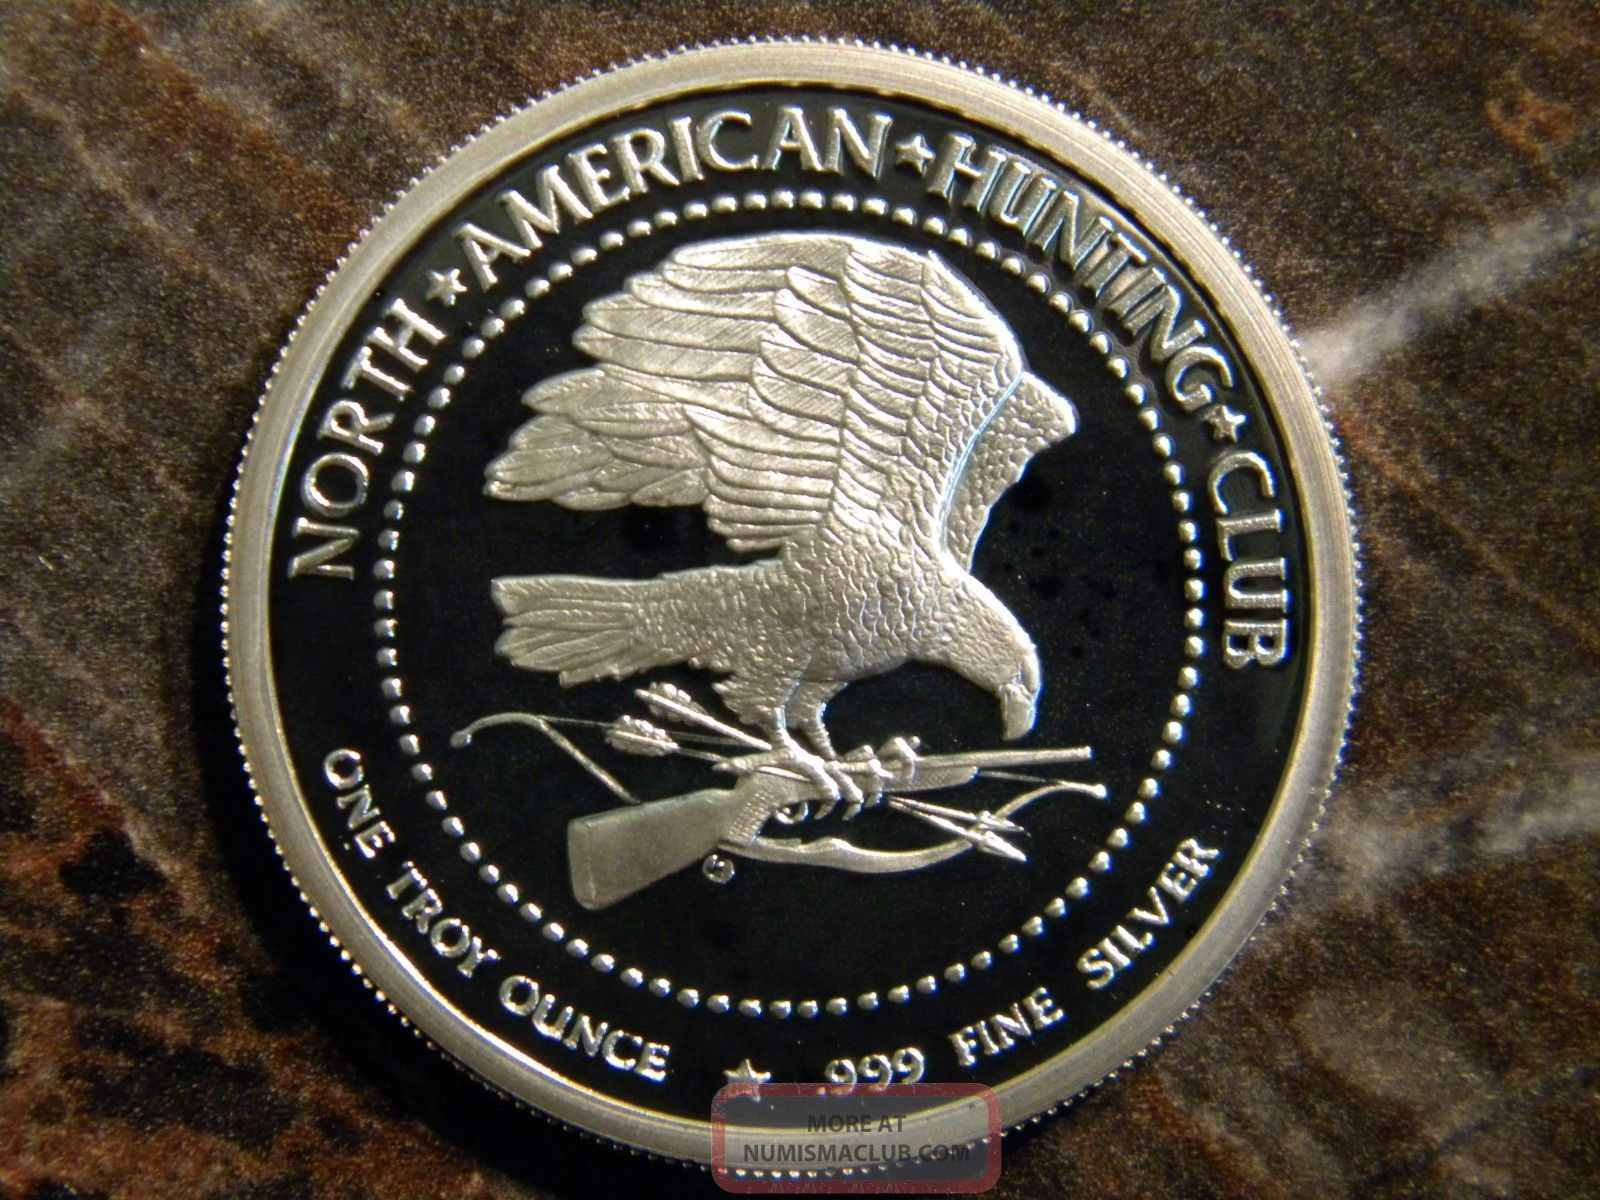 north american hunting club coins value